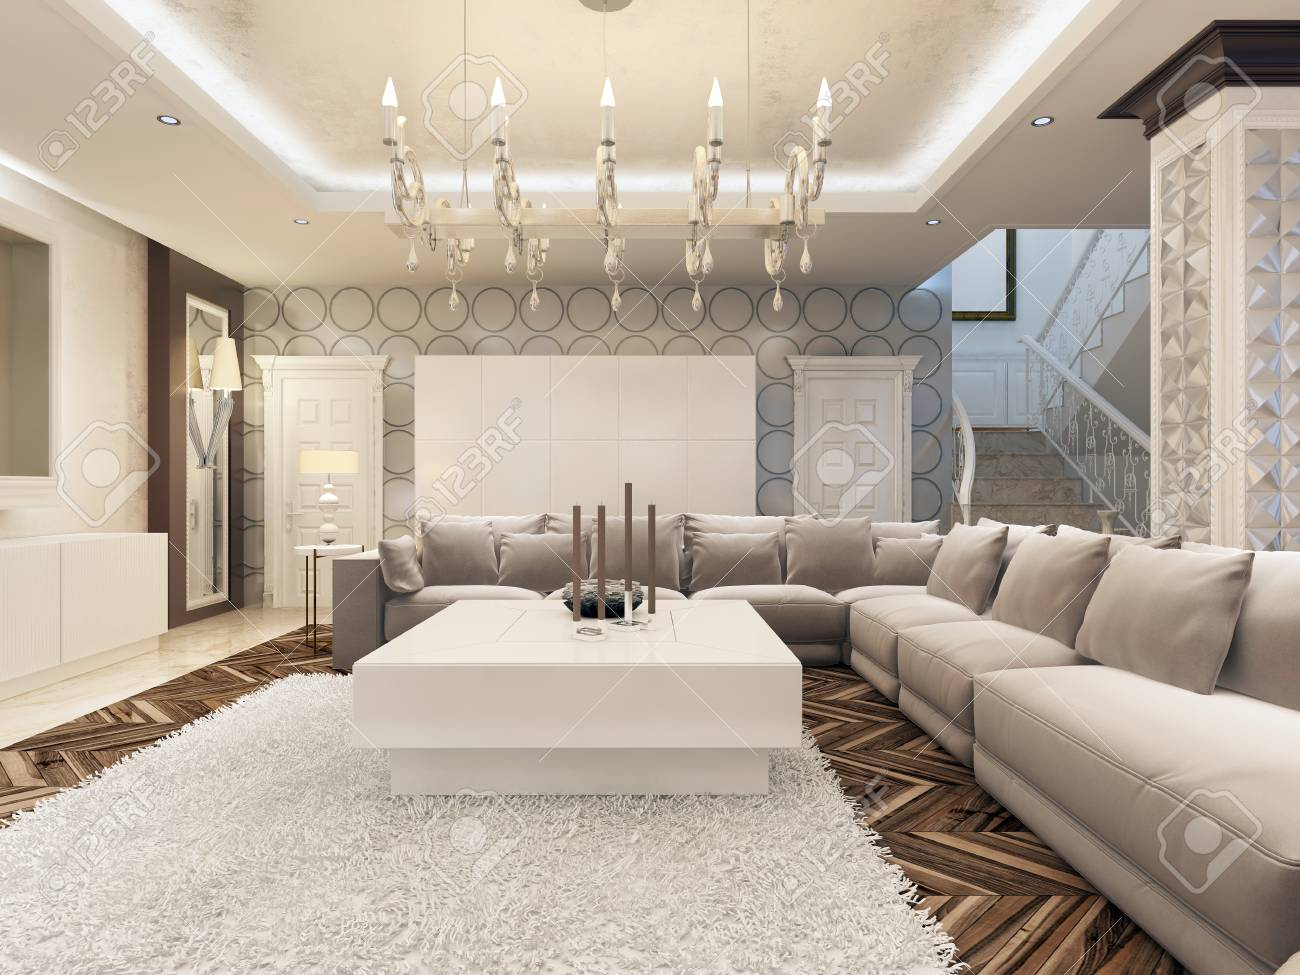 Luxury Art Deco Design Bright Living Room With Large Corner Sofa And Two  Armchairs. 3D